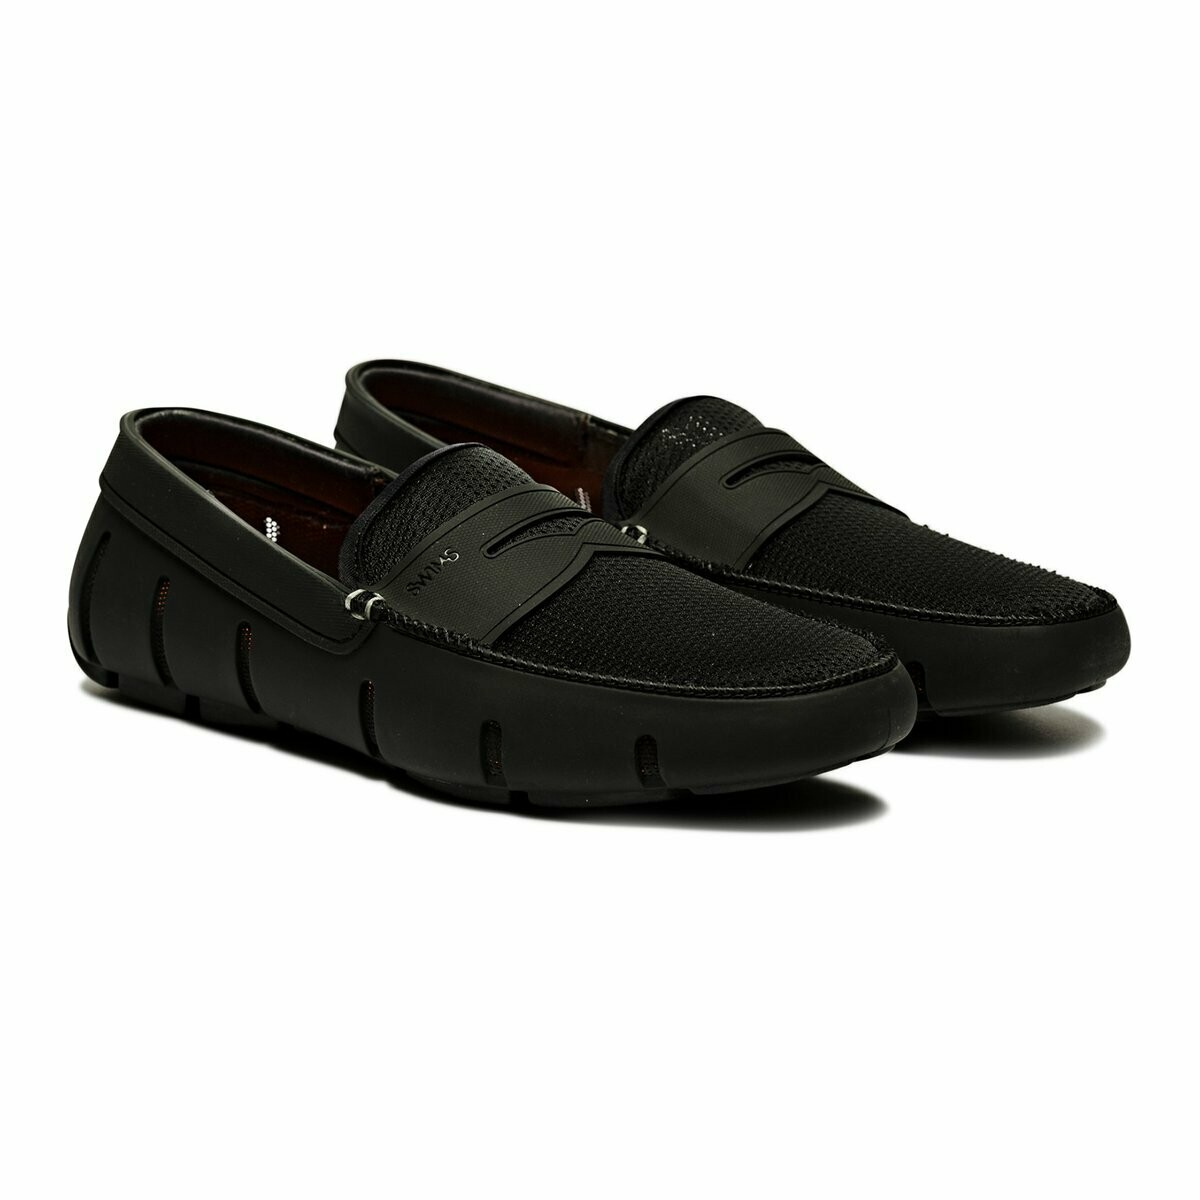 Swims Penny Loafer Black